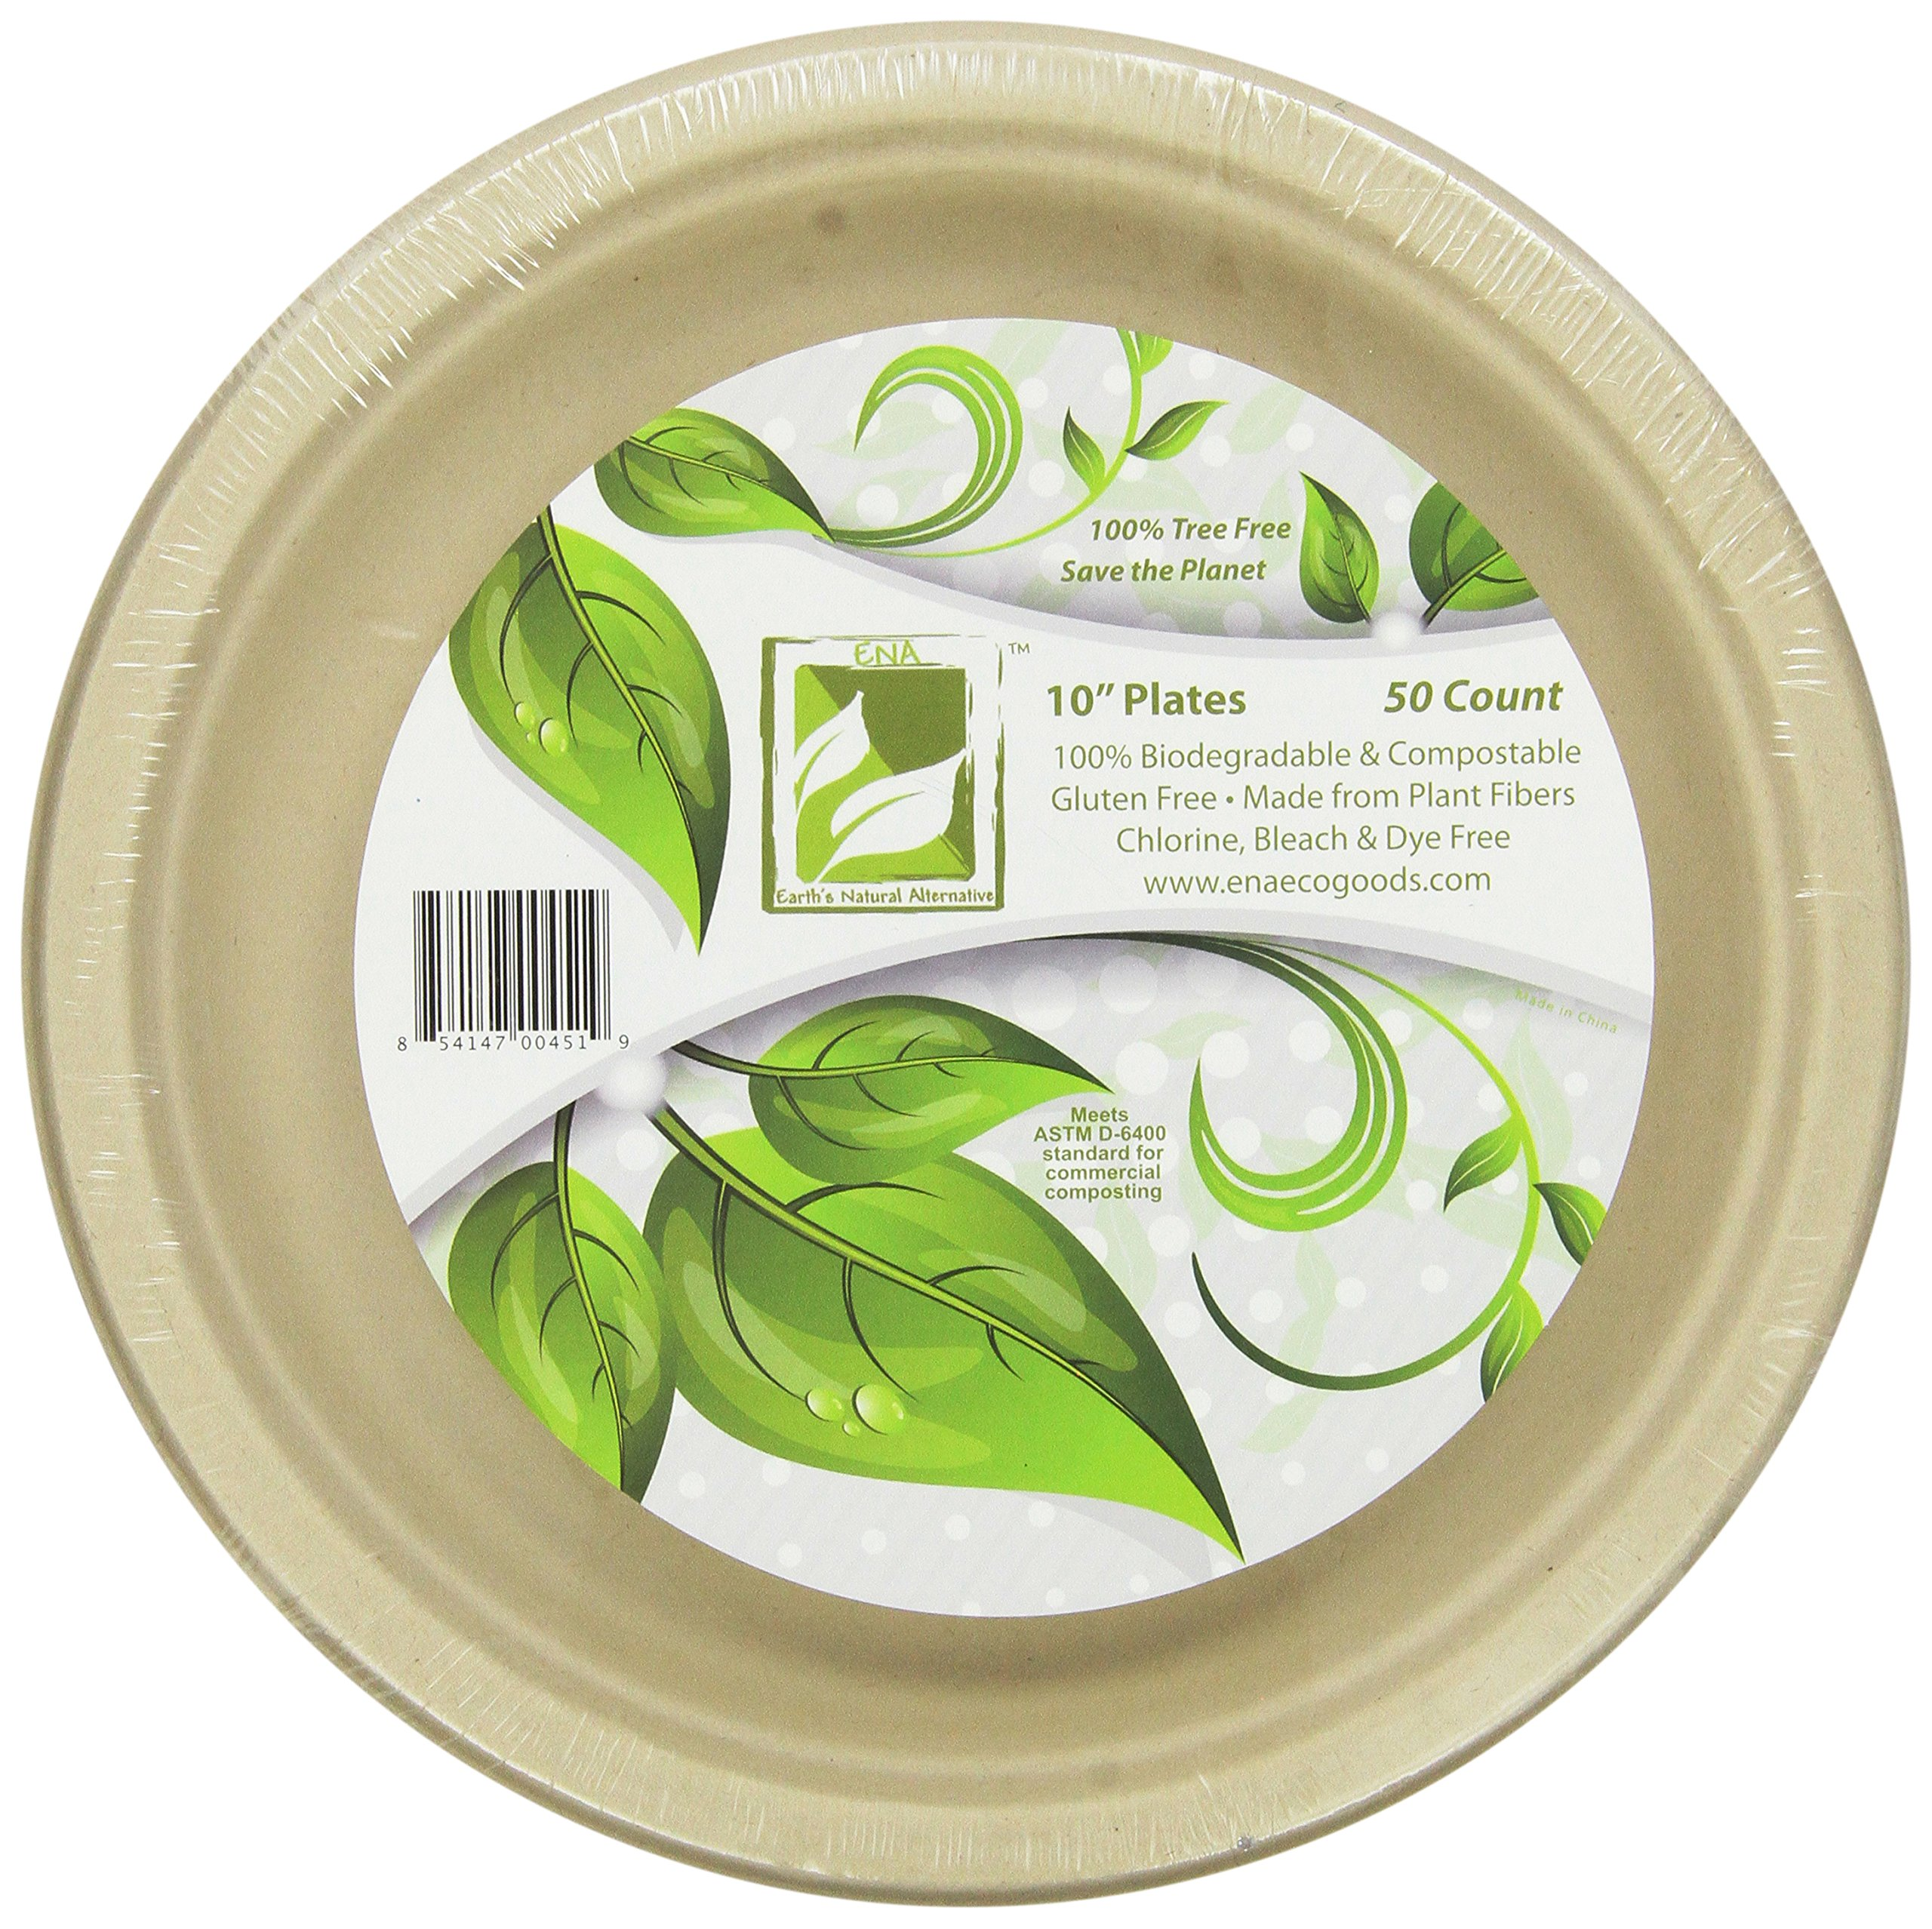 Earth's Natural Alternative Plate, 10-Inch, 50-Pack